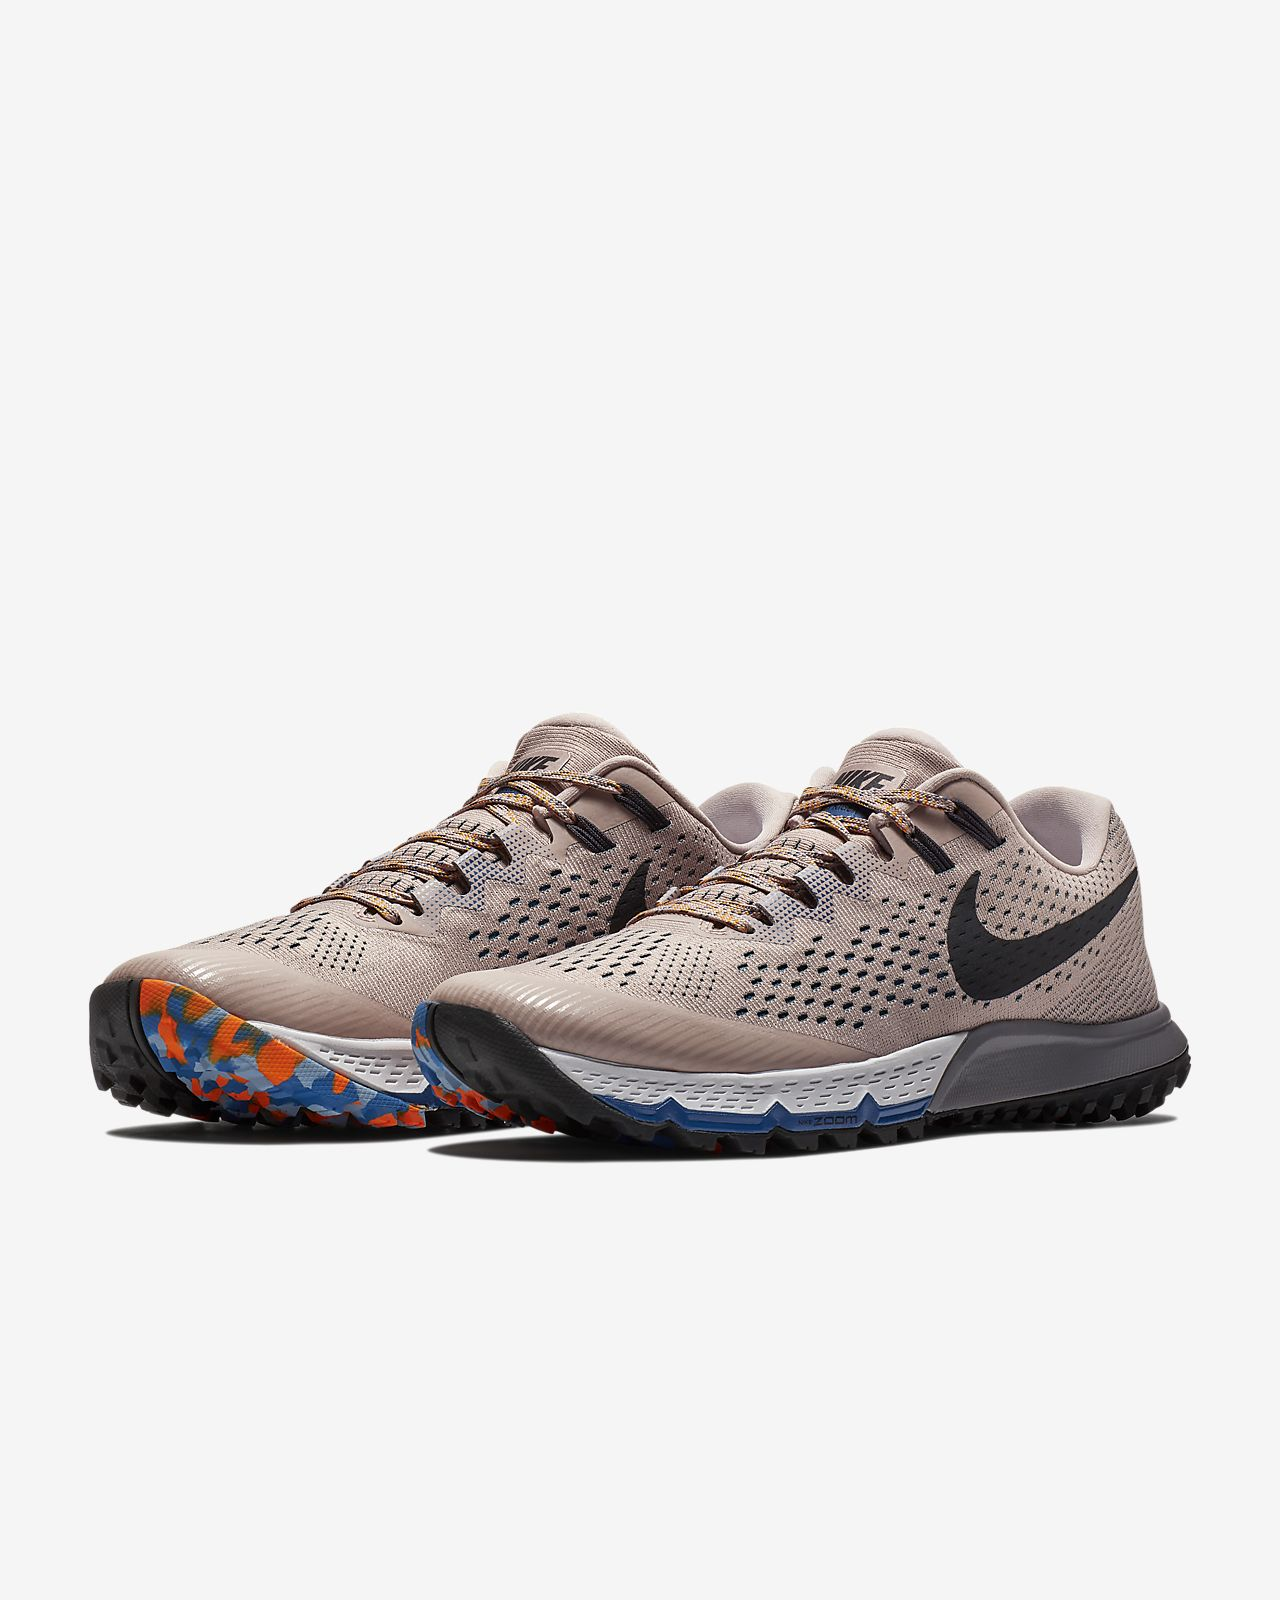 new arrival 6f342 fc9c4 Very Goods   Nike Air Zoom Terra Kiger 4 Men s Running Shoe. Nike.com DK